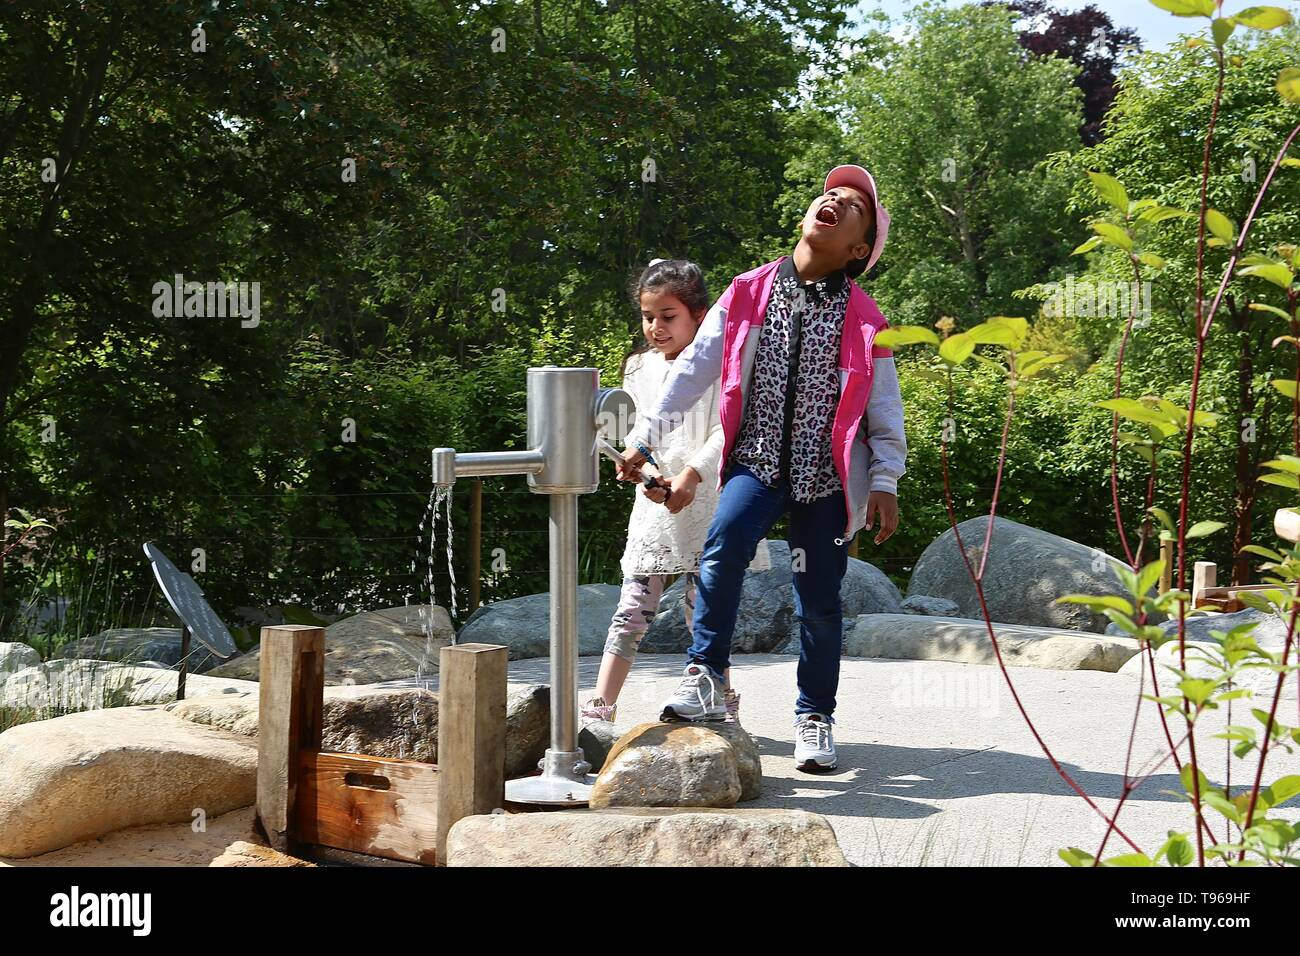 The Children's Garden Kew Royal Garden 16 May 2019 - Stock Image